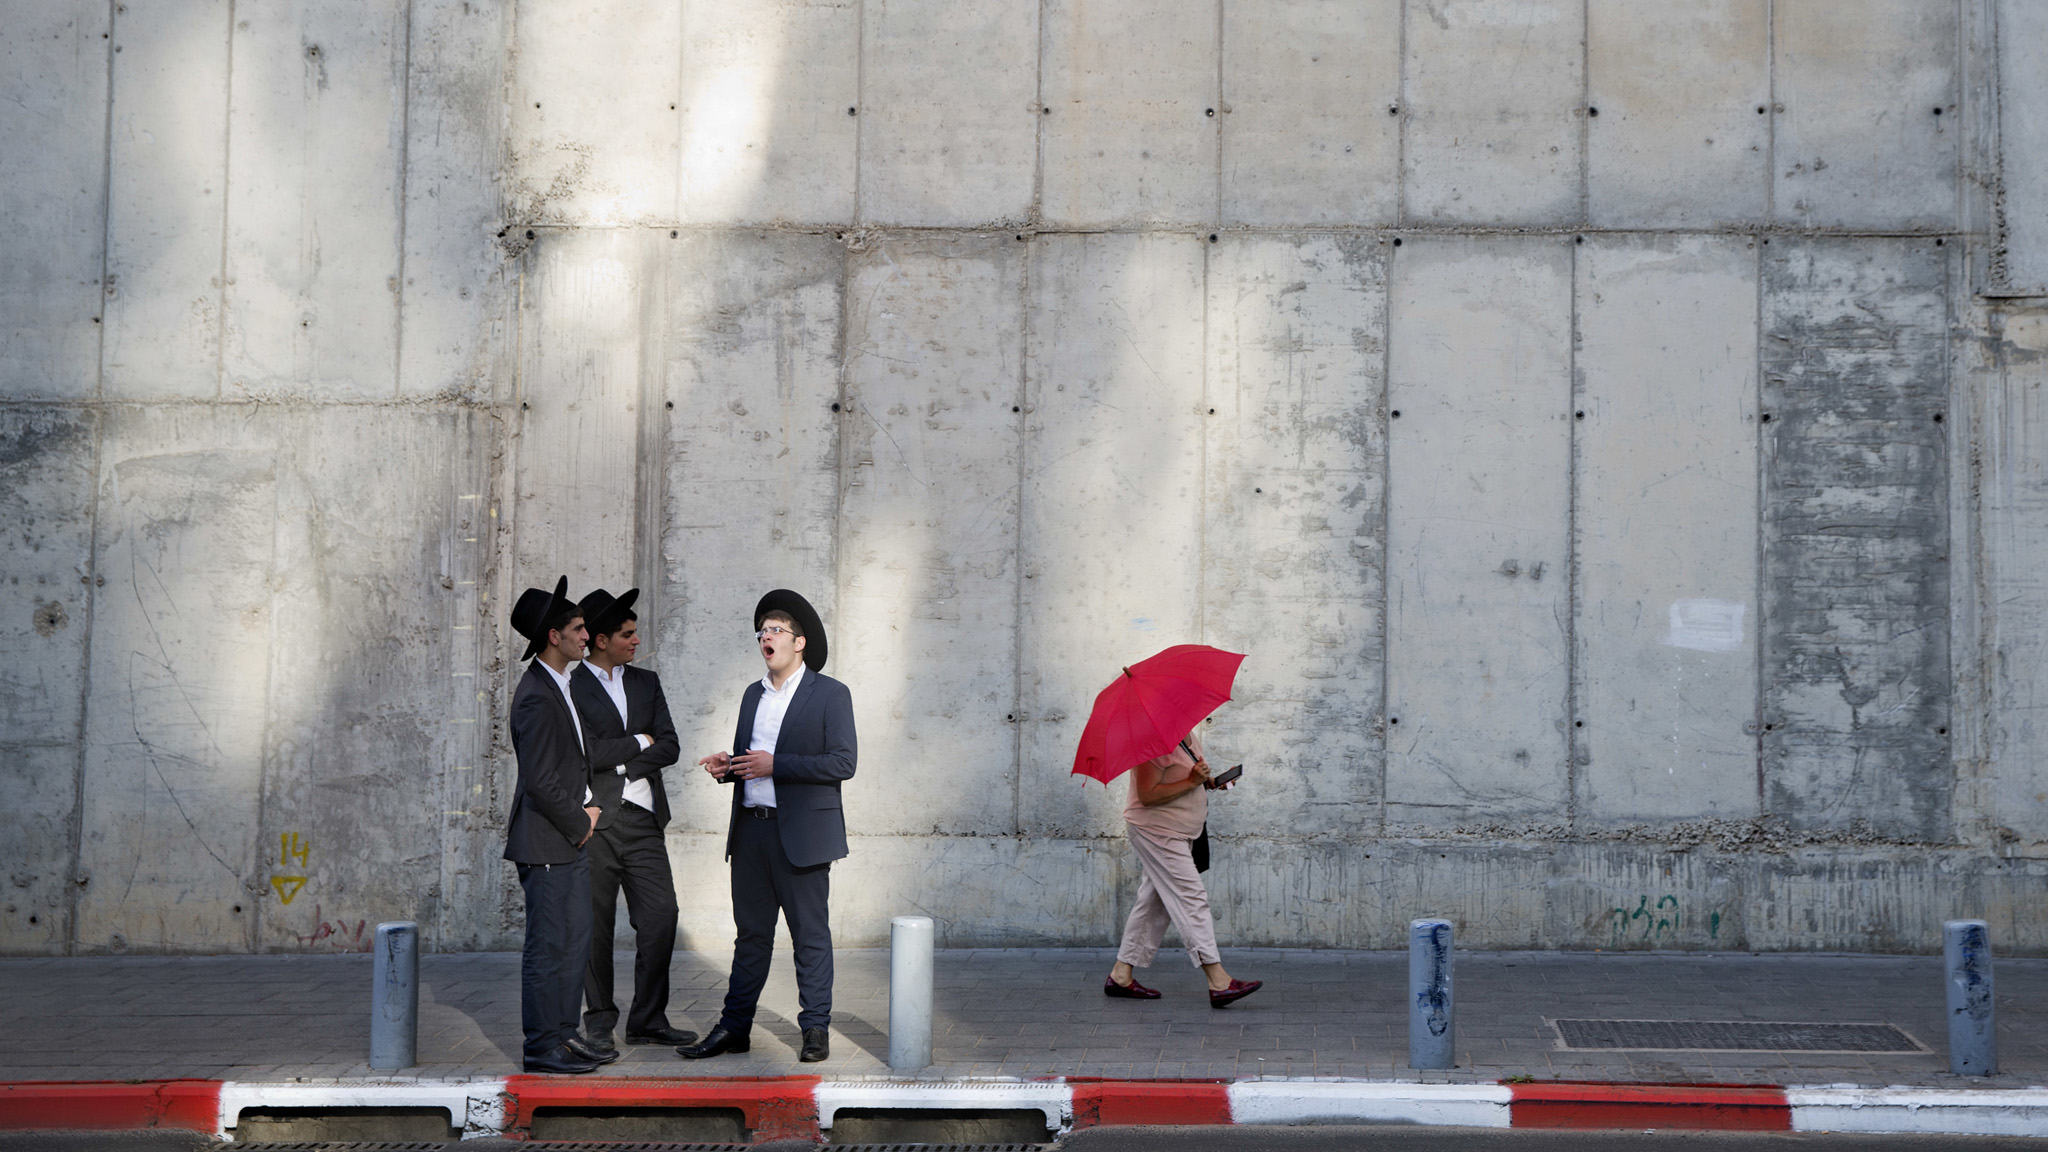 A woman shades herself with an umbrella next to a group of Ultra-Orthodox Jewish men as they wait for transportation at a bus stop in Bnei Brak, Israel, Monday, July 11, 2016. (AP Photo/Oded Balilty)